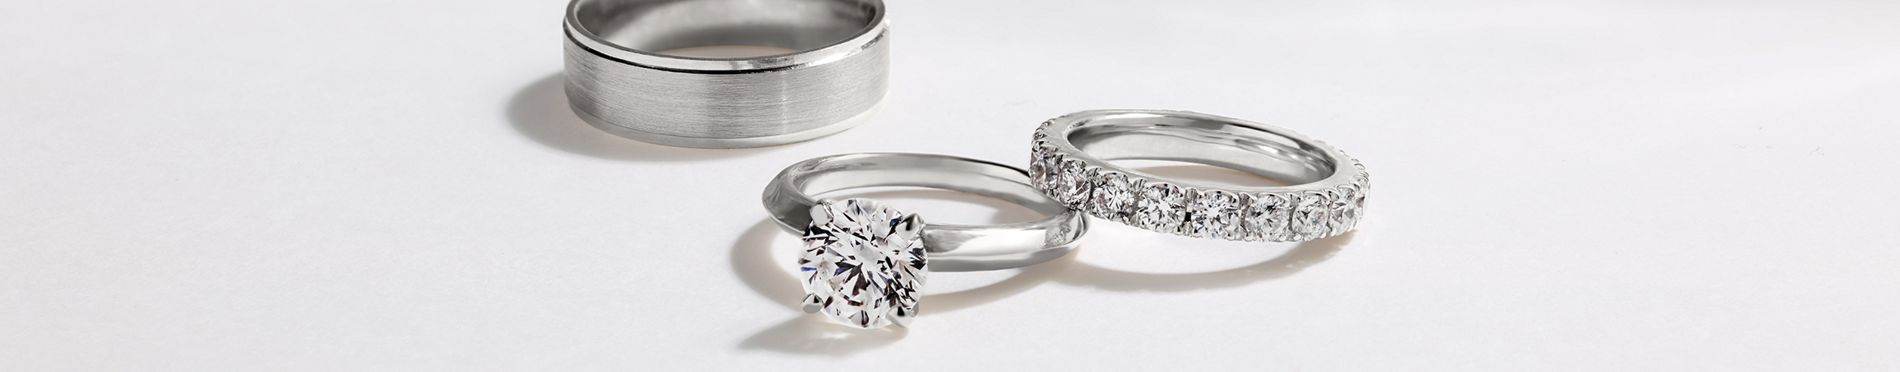 Desktop Image of a Men's Wedding Band, a Diamond Engagement Ring, and a Diamond Wedding Band